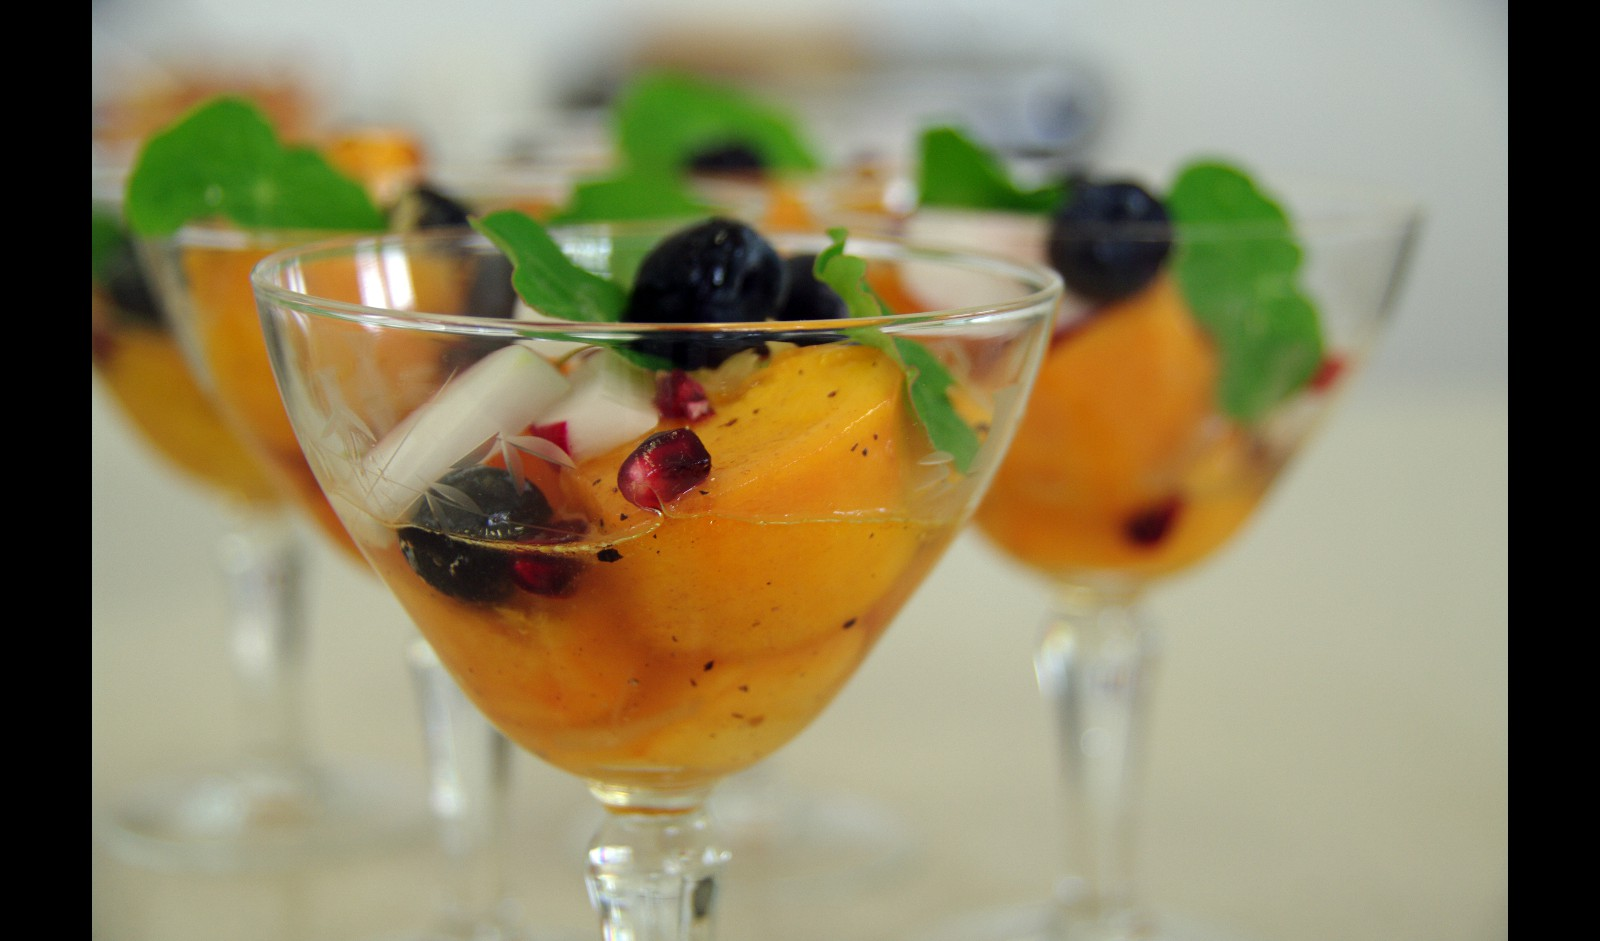 Try a little Persimmon Cocktail for a smashing starter!